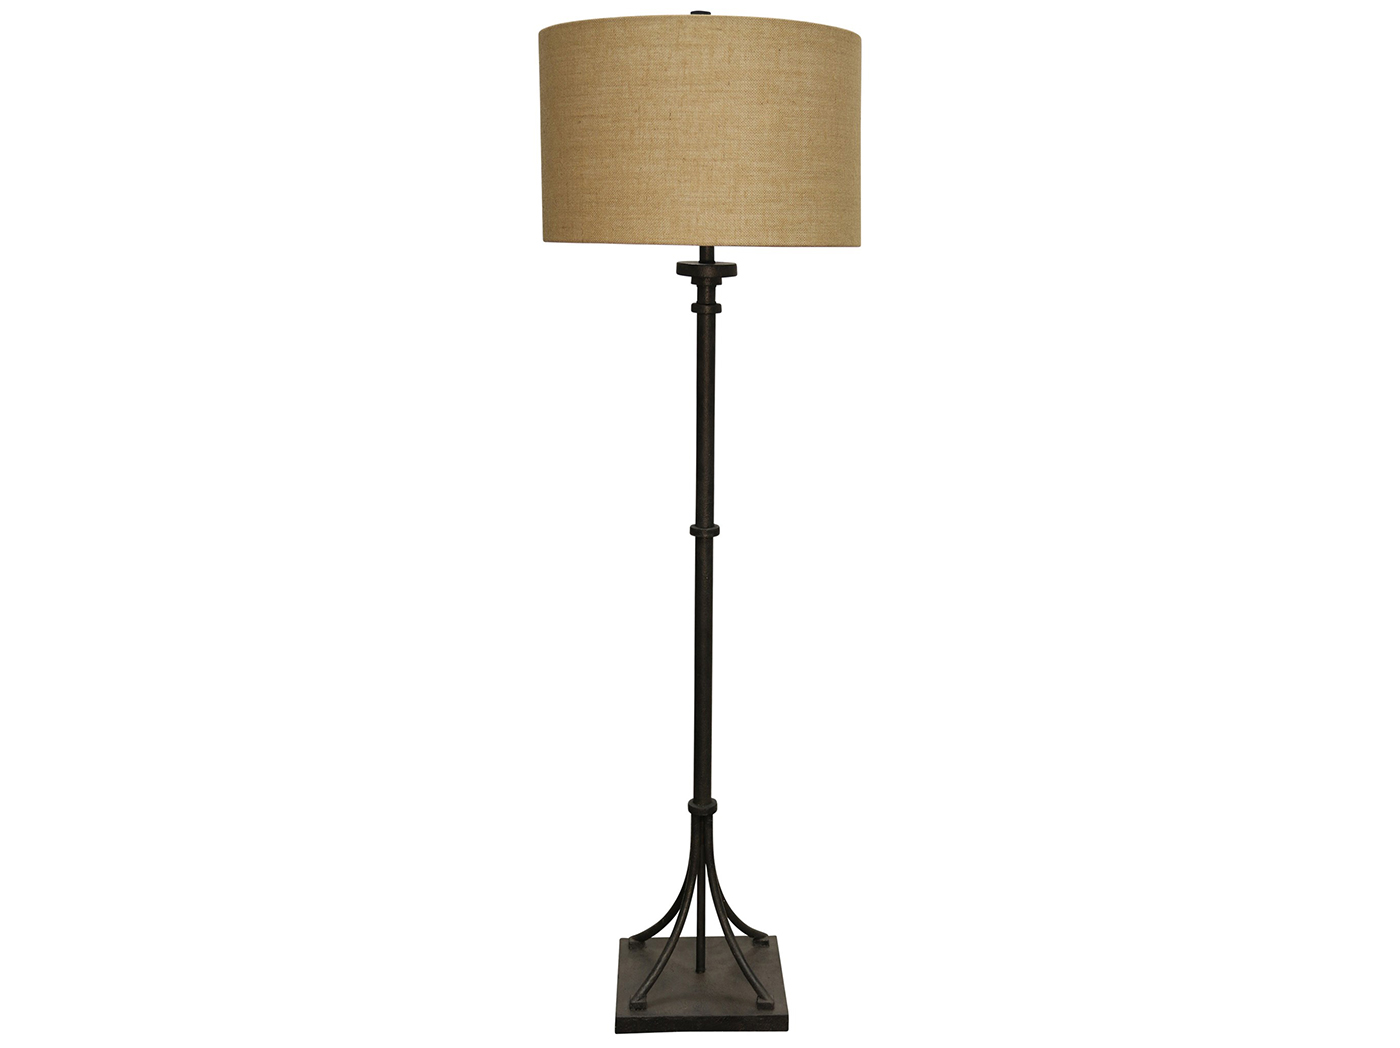 "Floor Lamp With Iron Stand 64""H"